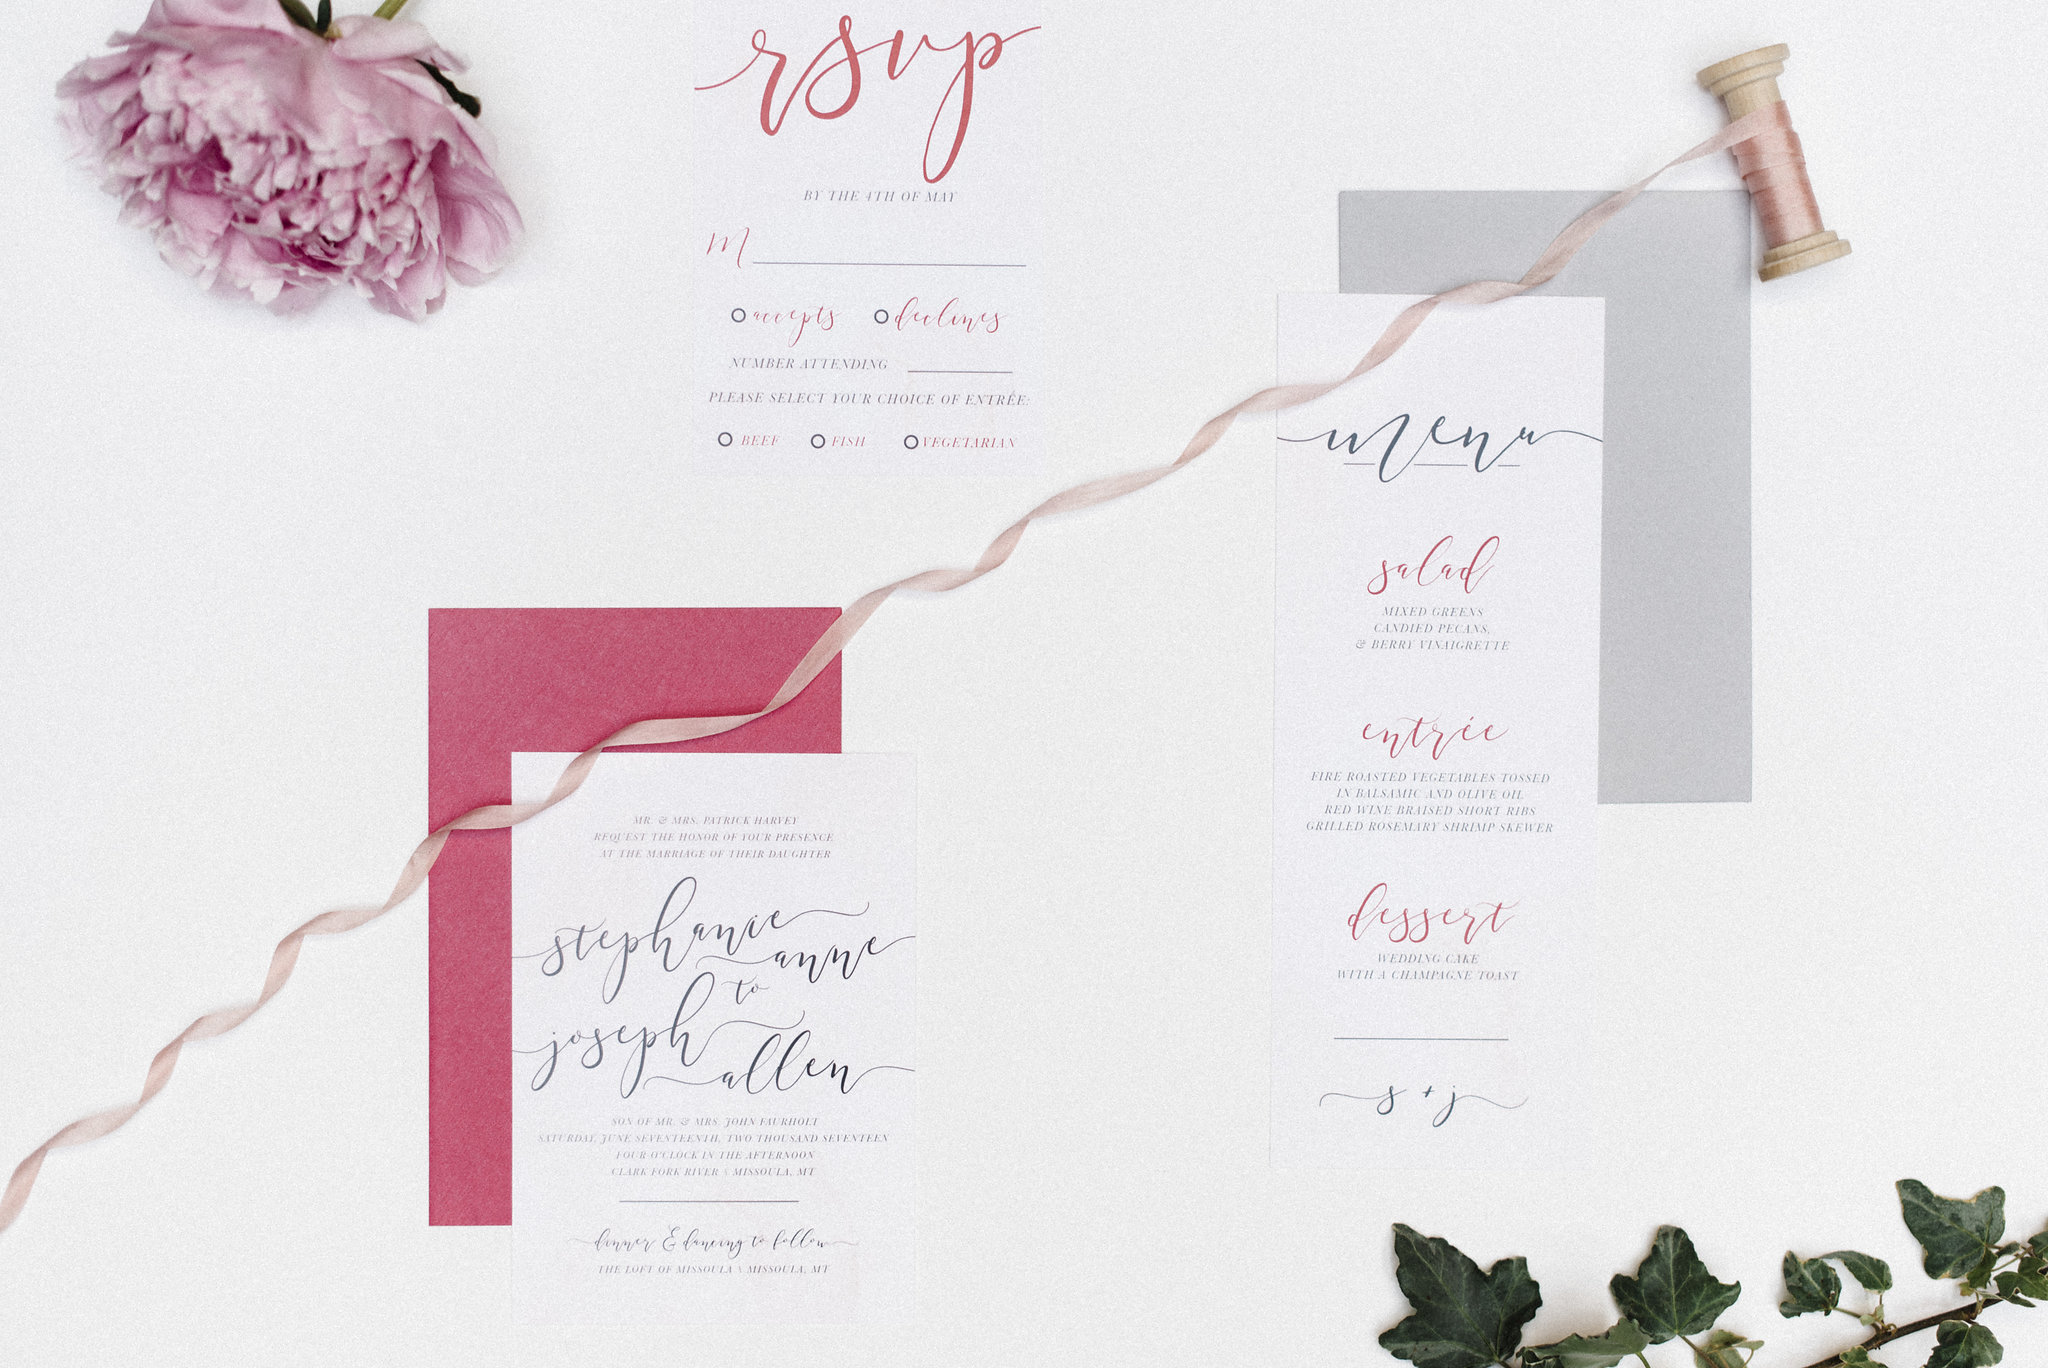 Ribbon by May Arts Ribbon//Invitations by Hey Tayler Design Co.